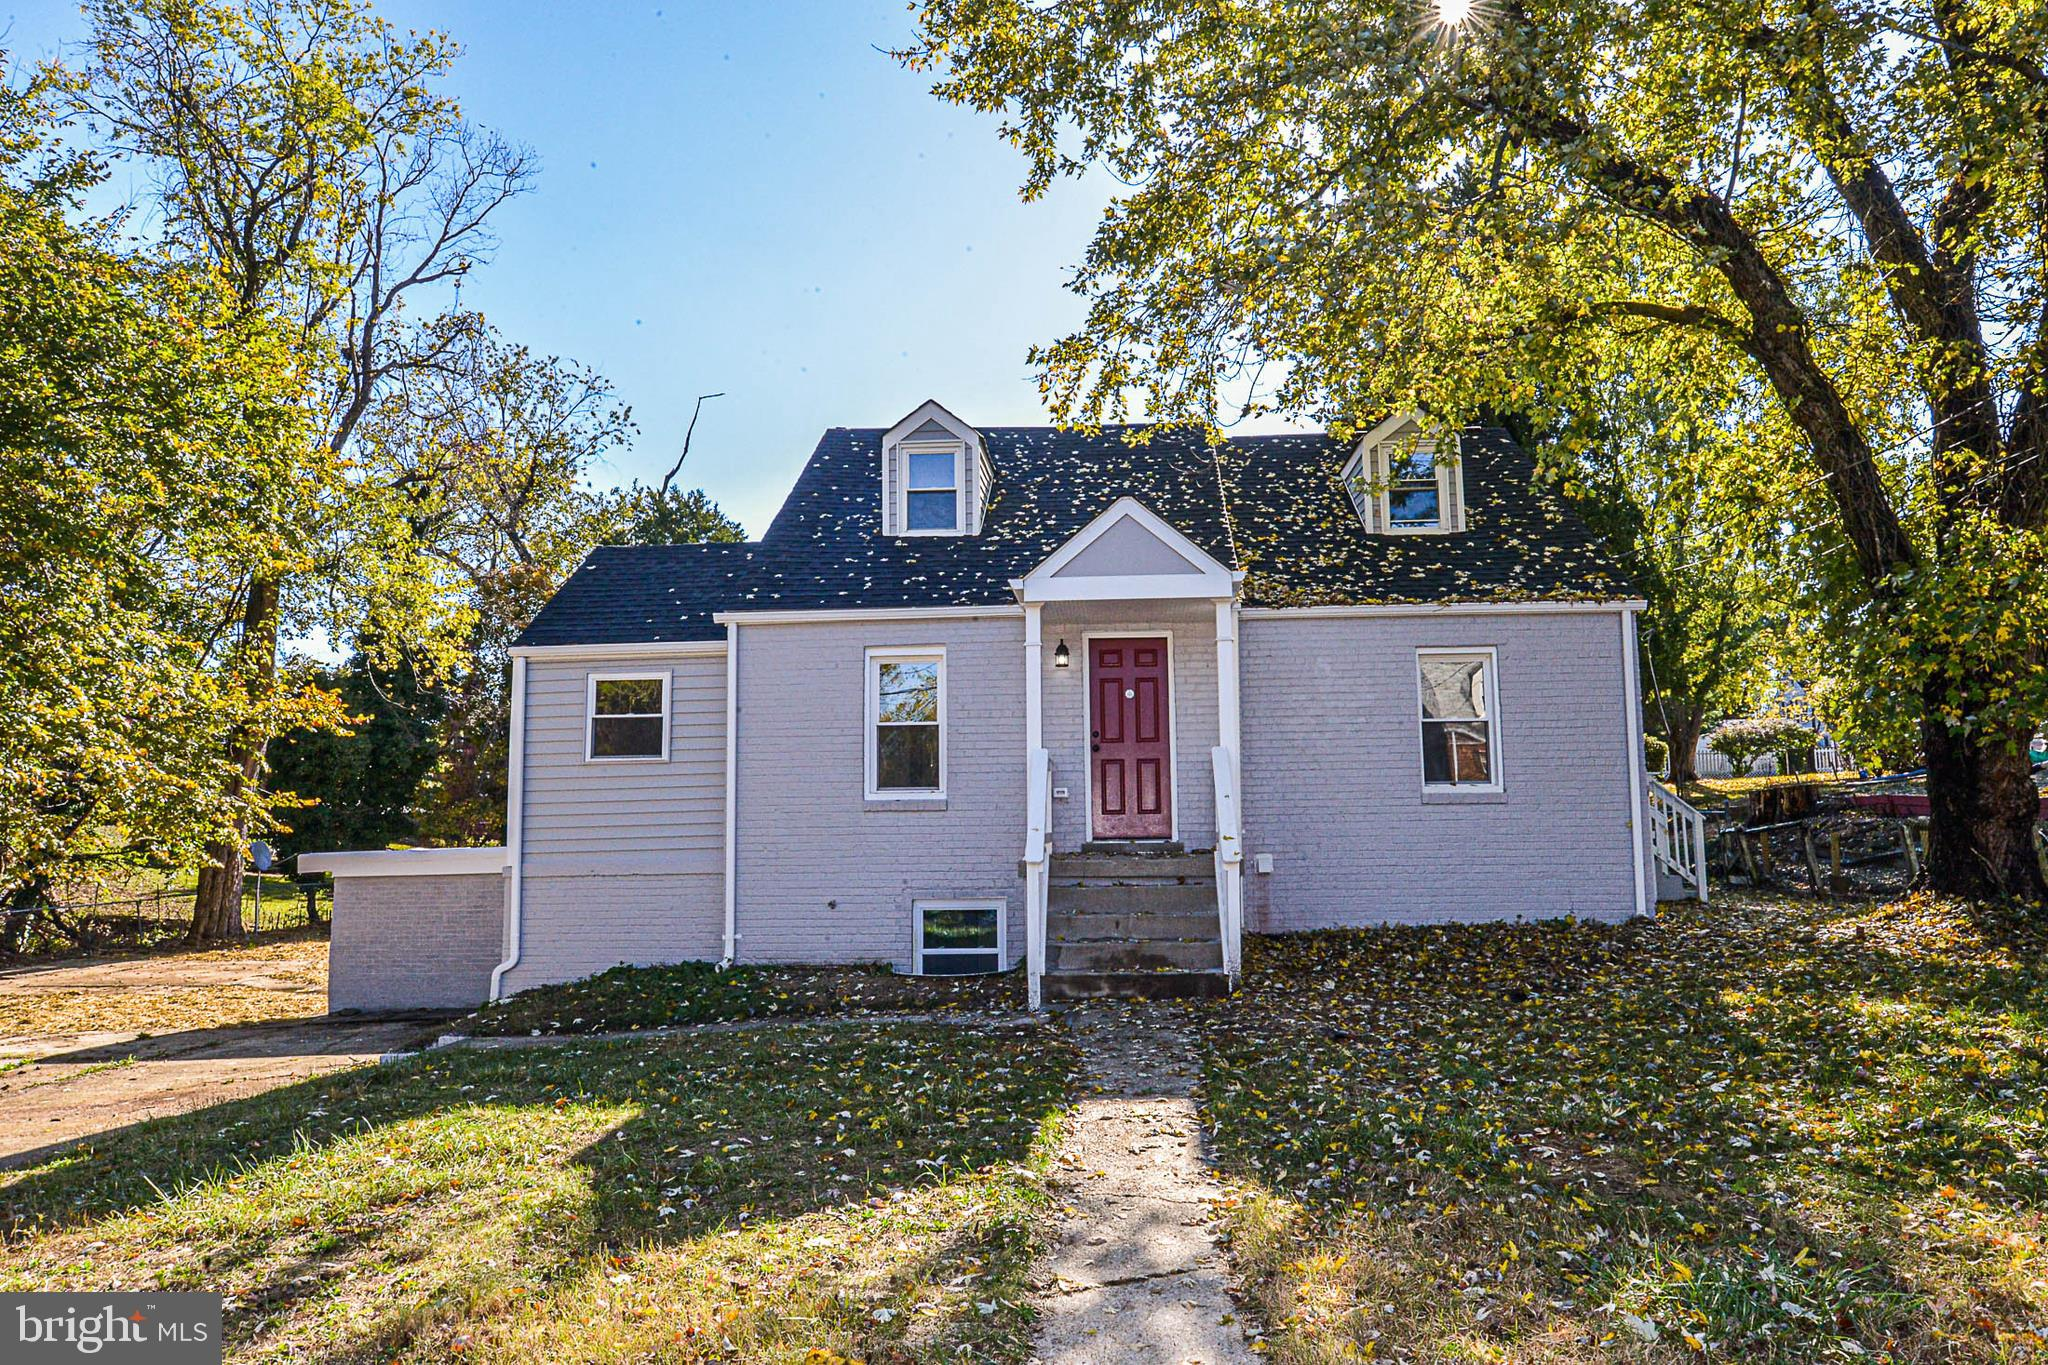 Beautifully renovated house with a half-acre lot sitting at the end of street.  Driveway offers ampl